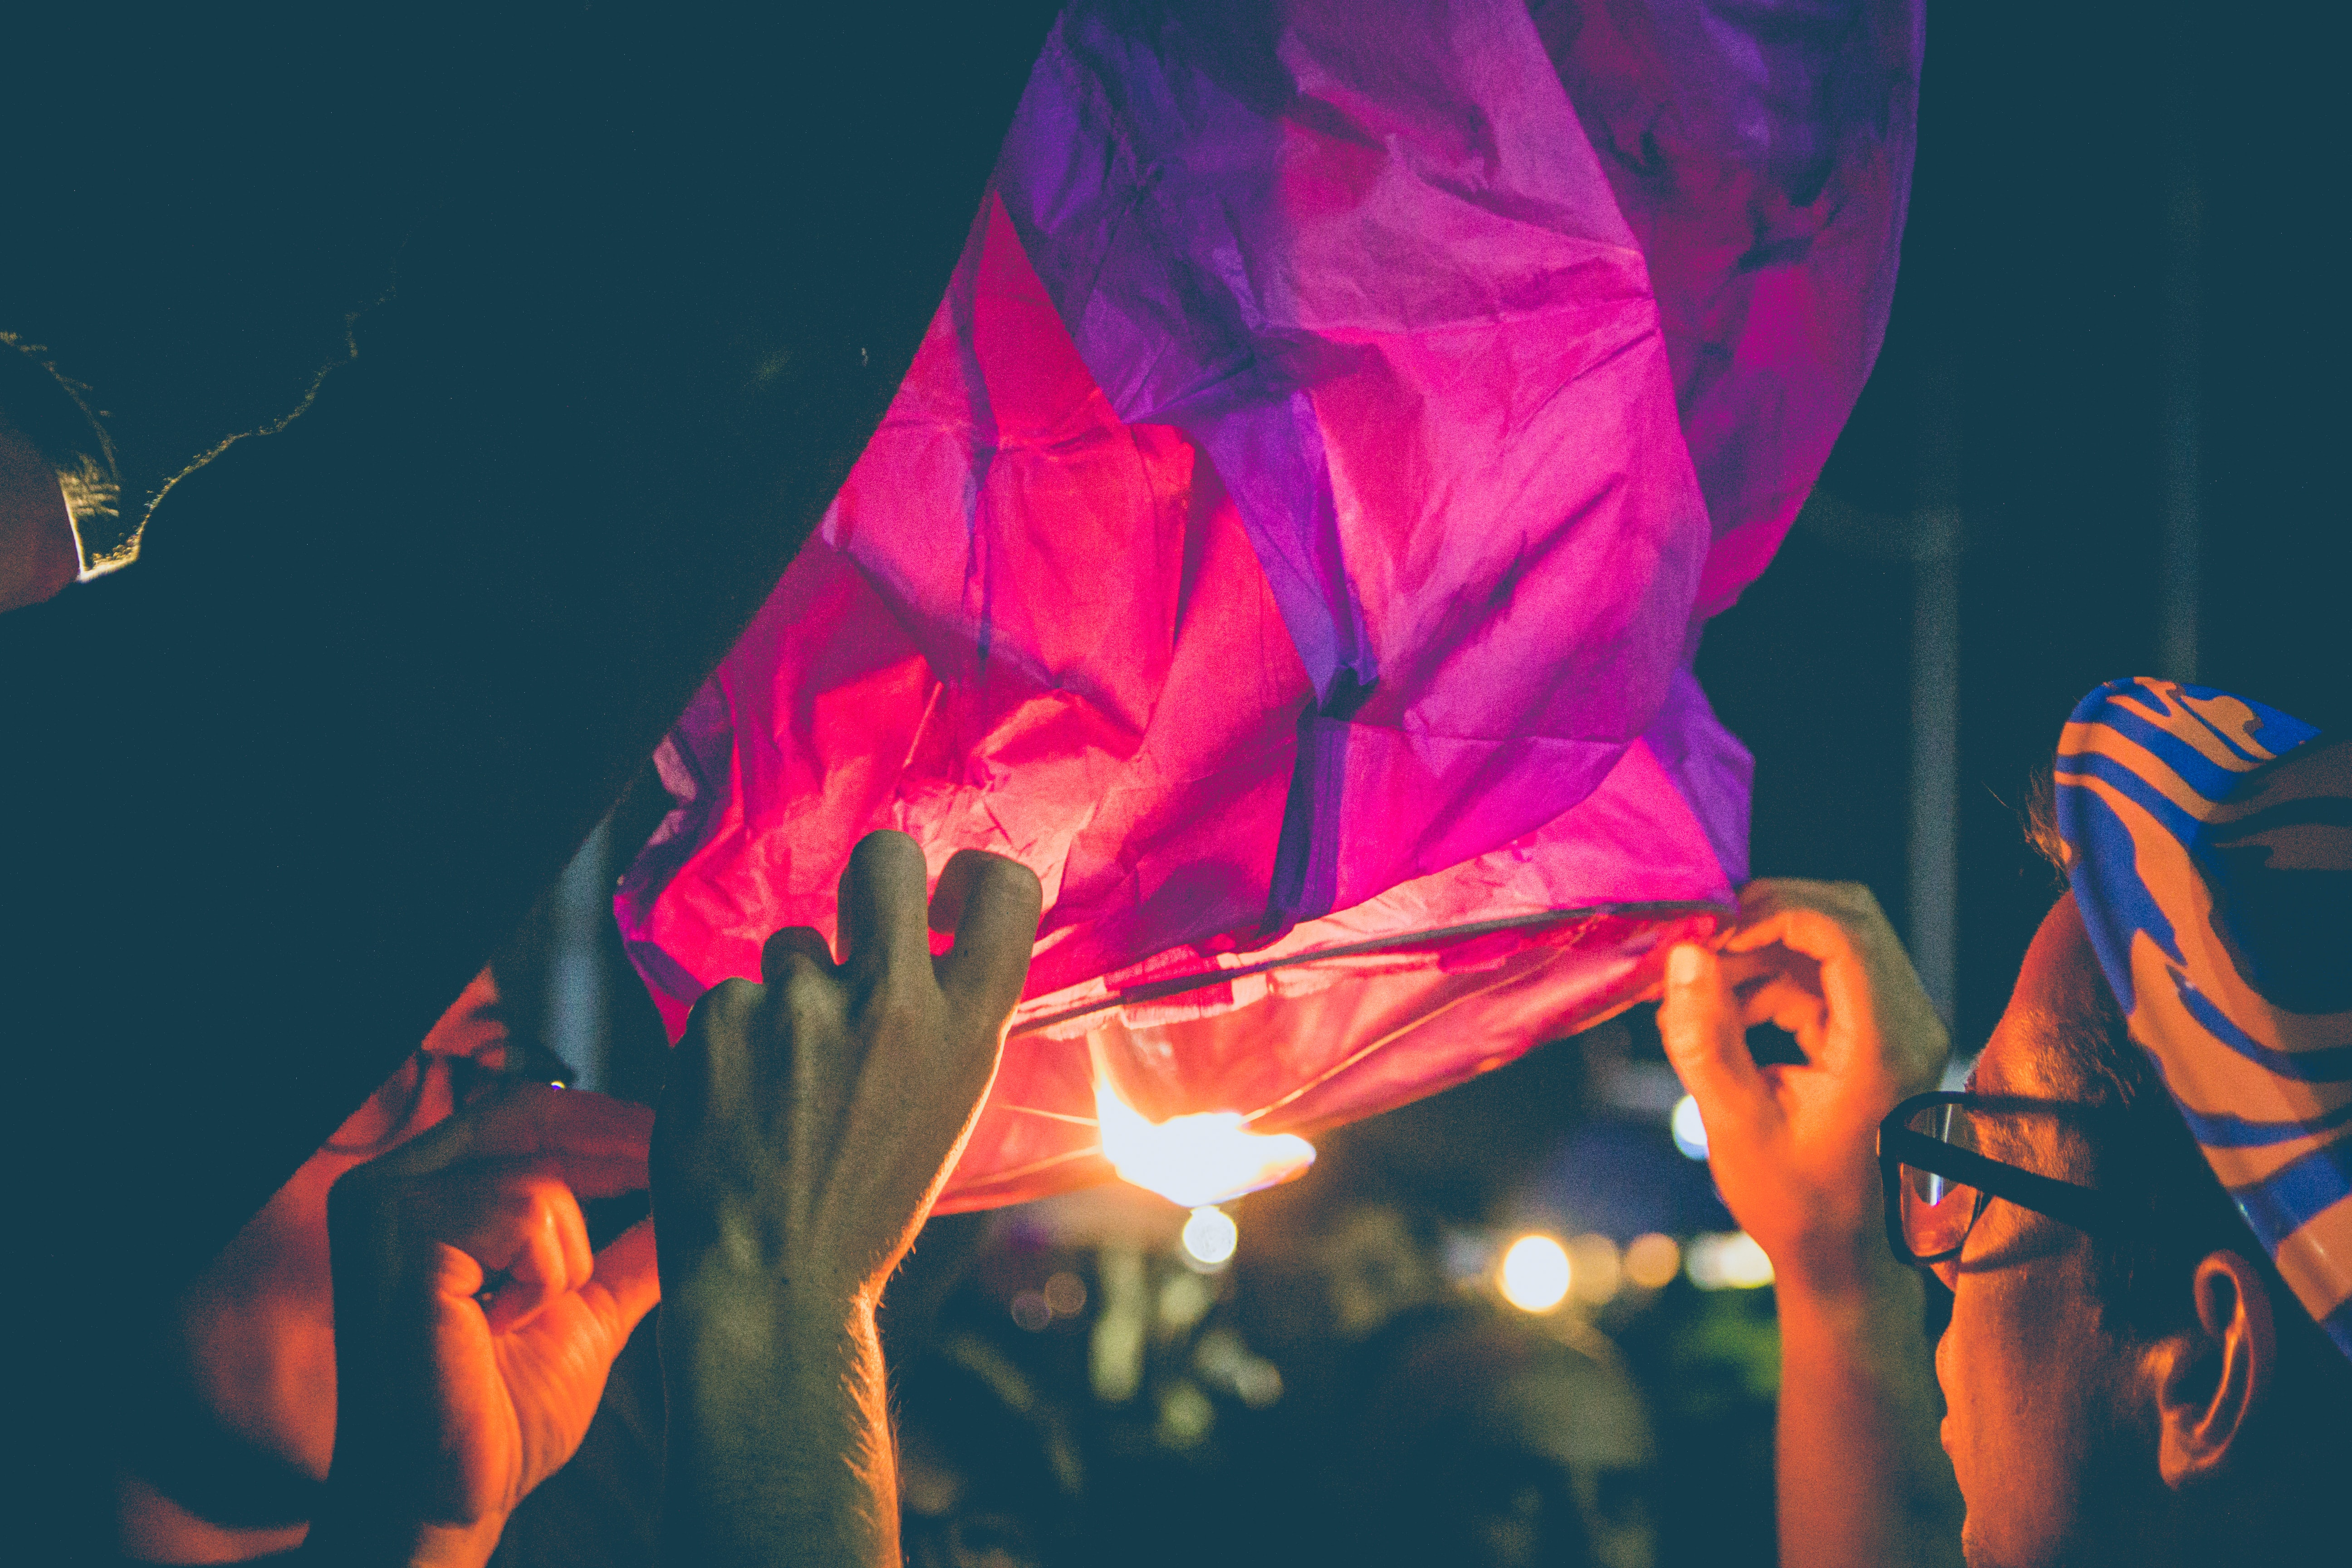 person's hand holding paper lantern